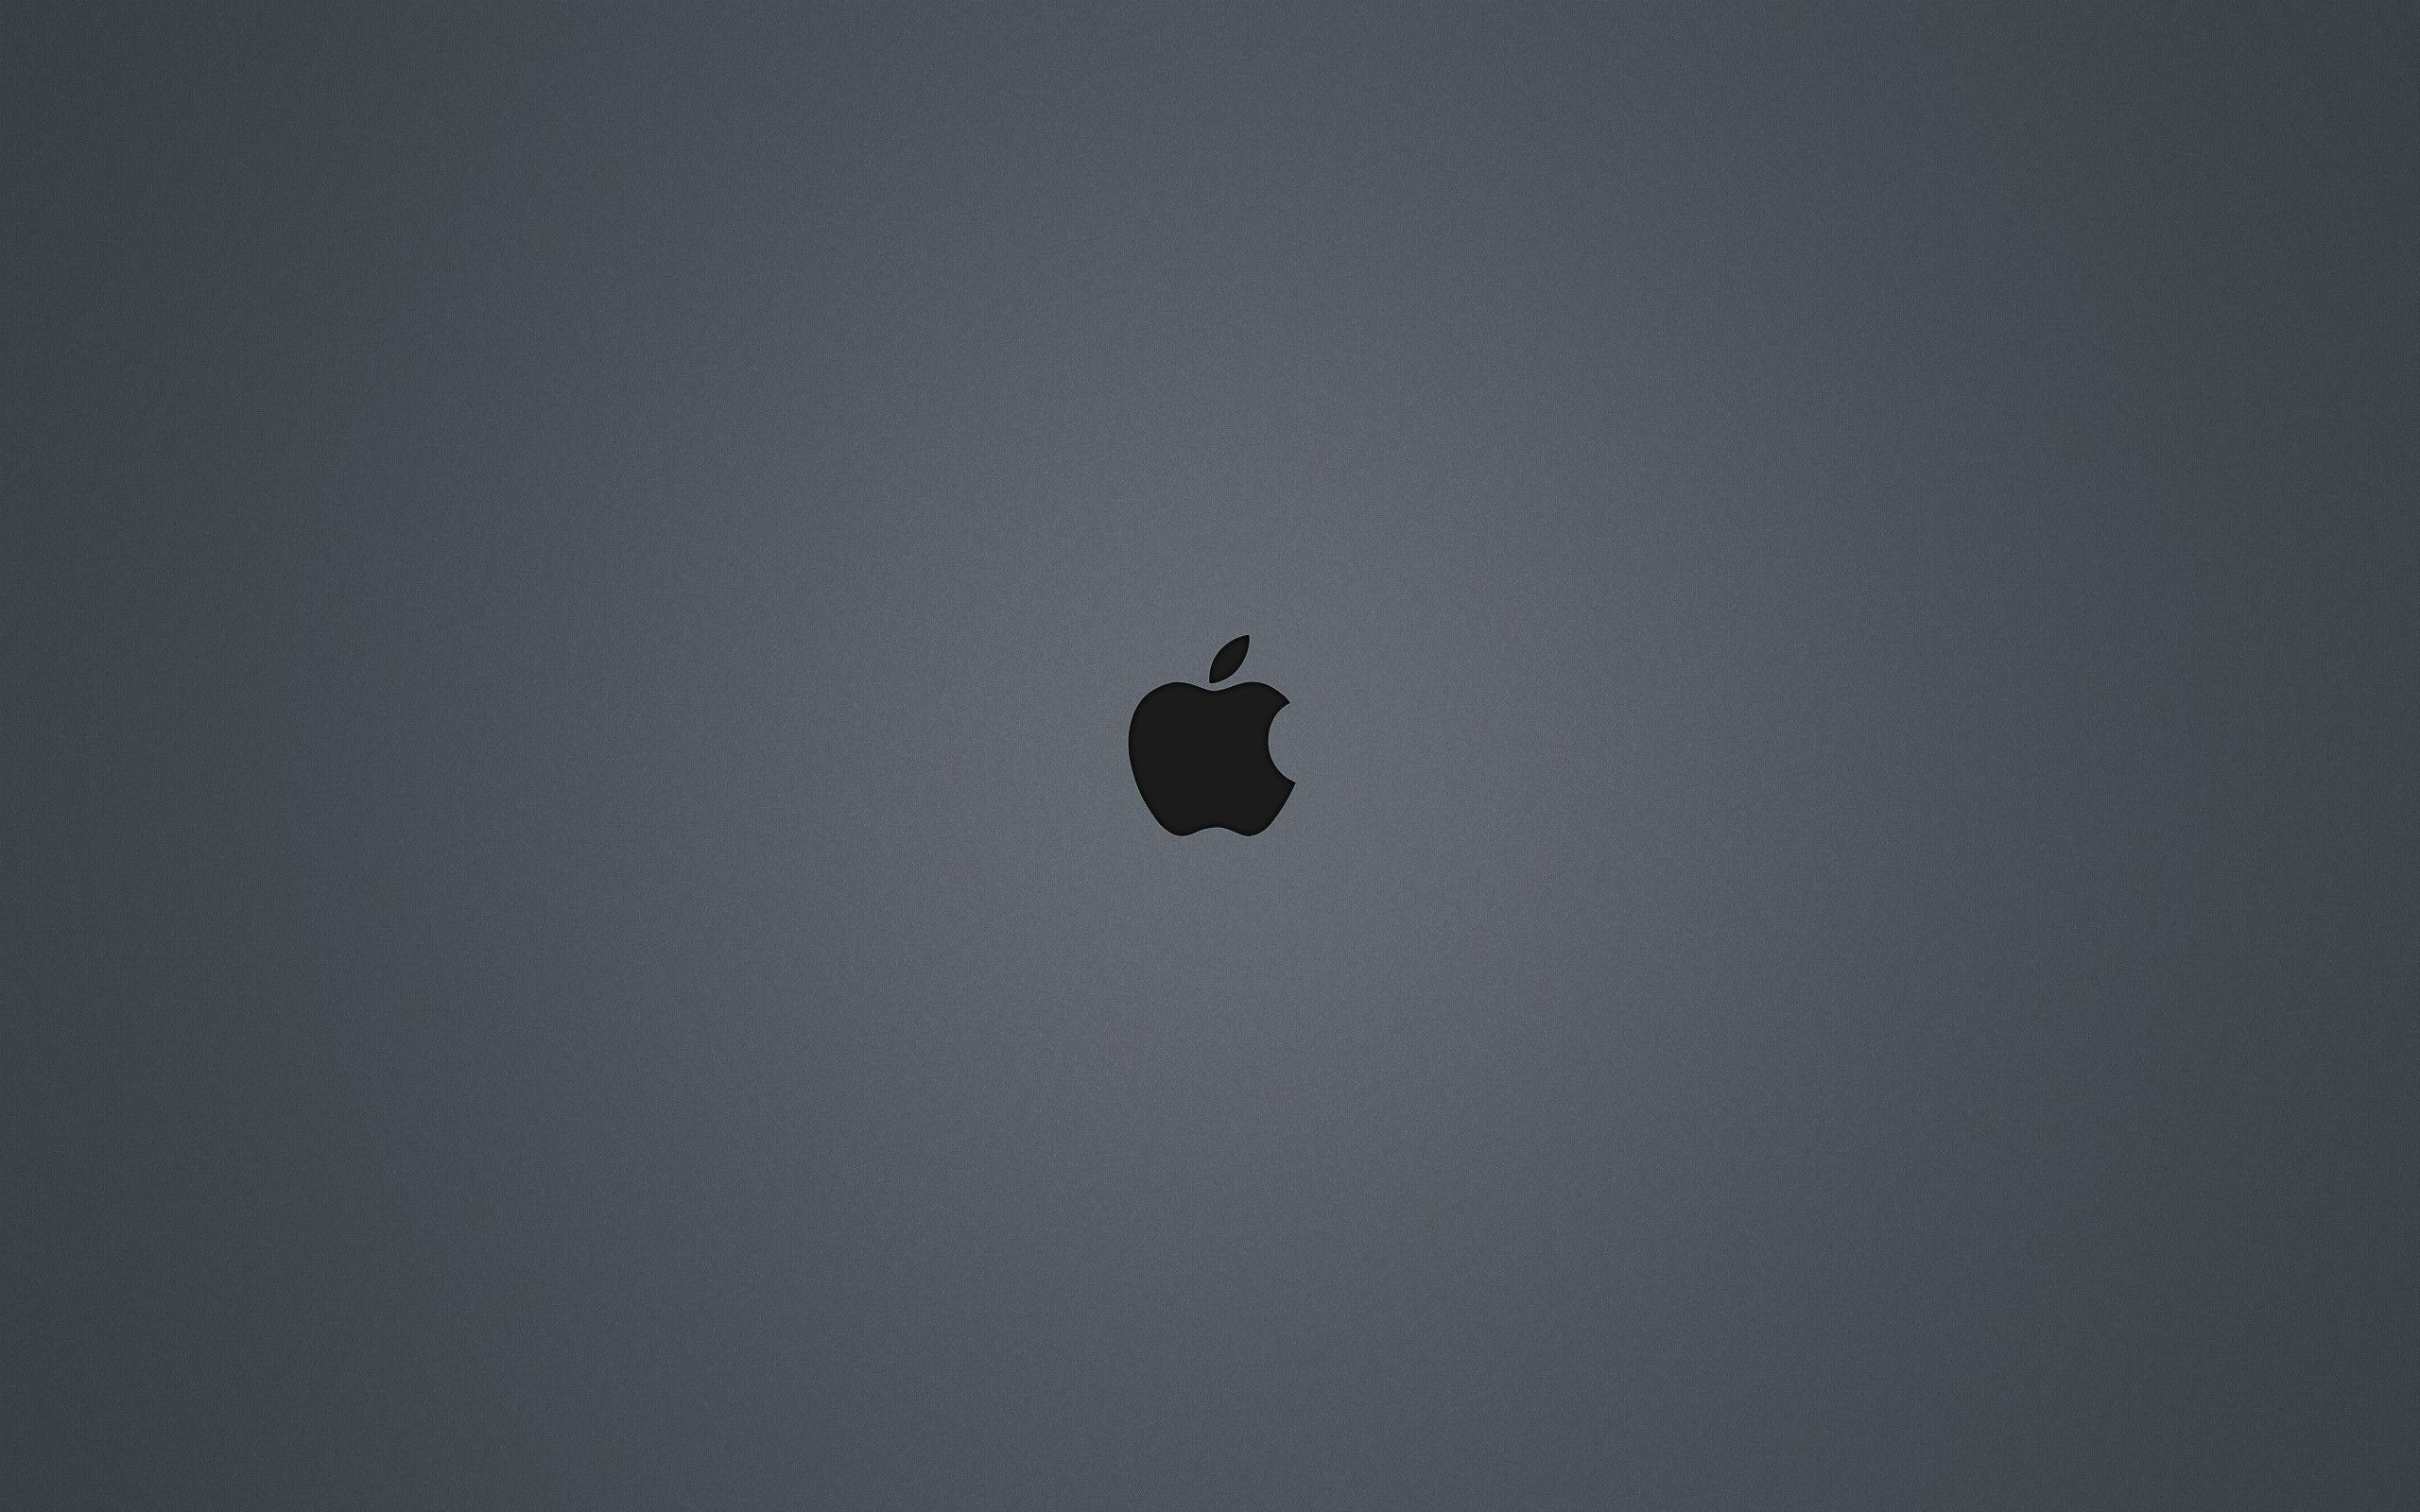 2560x1600 Apple Wallpaper Hd 1080p Download Apple Logo